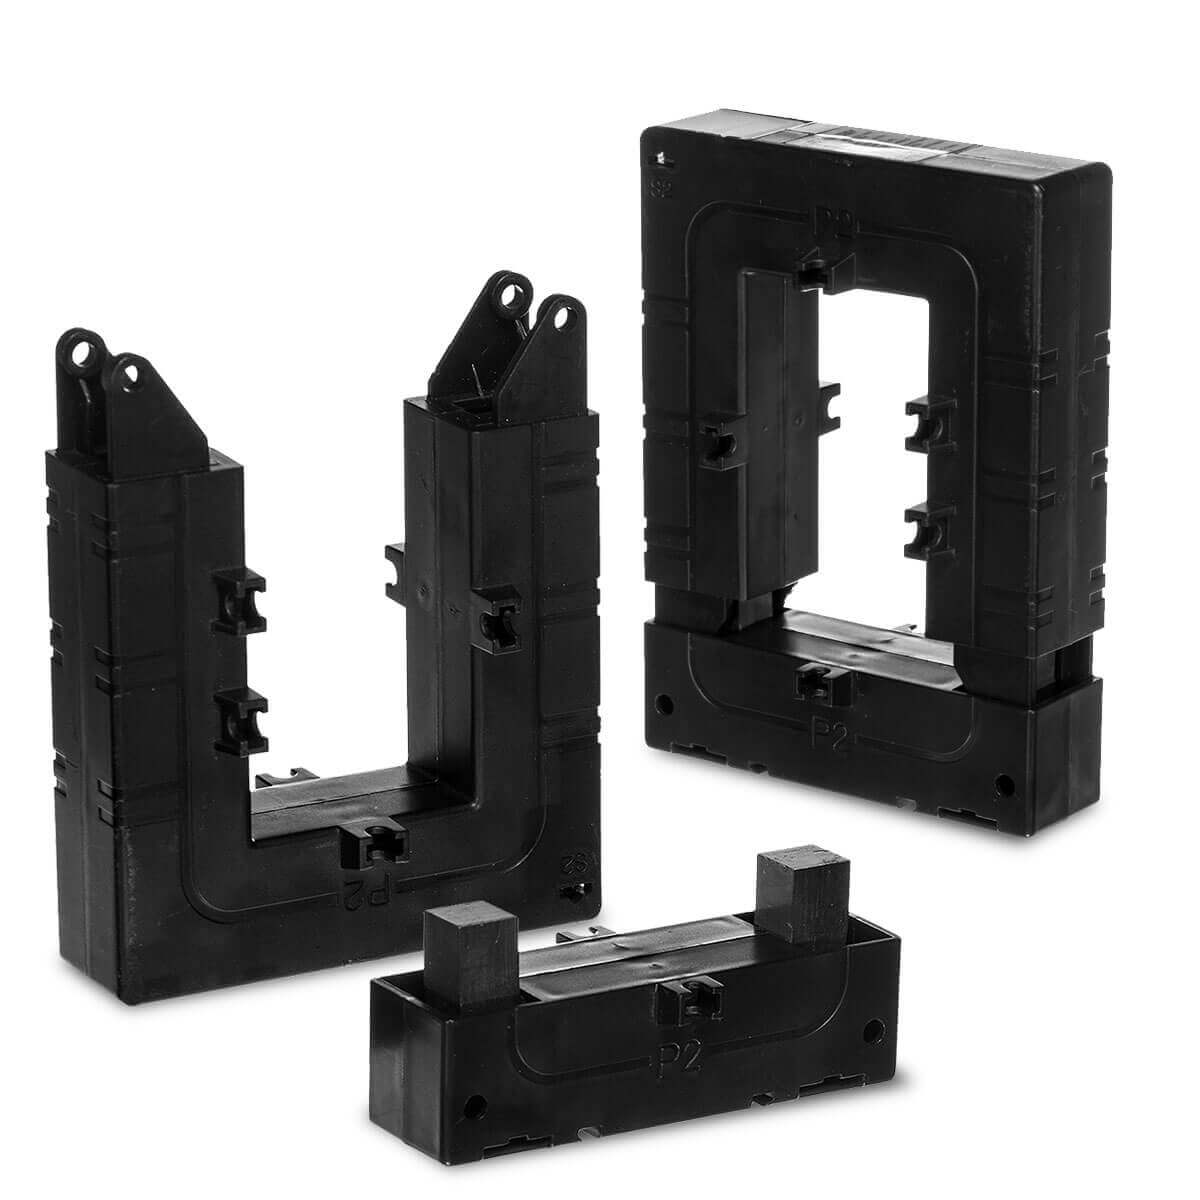 5A Split-Core Current Transformers – AcuCT 5A Series